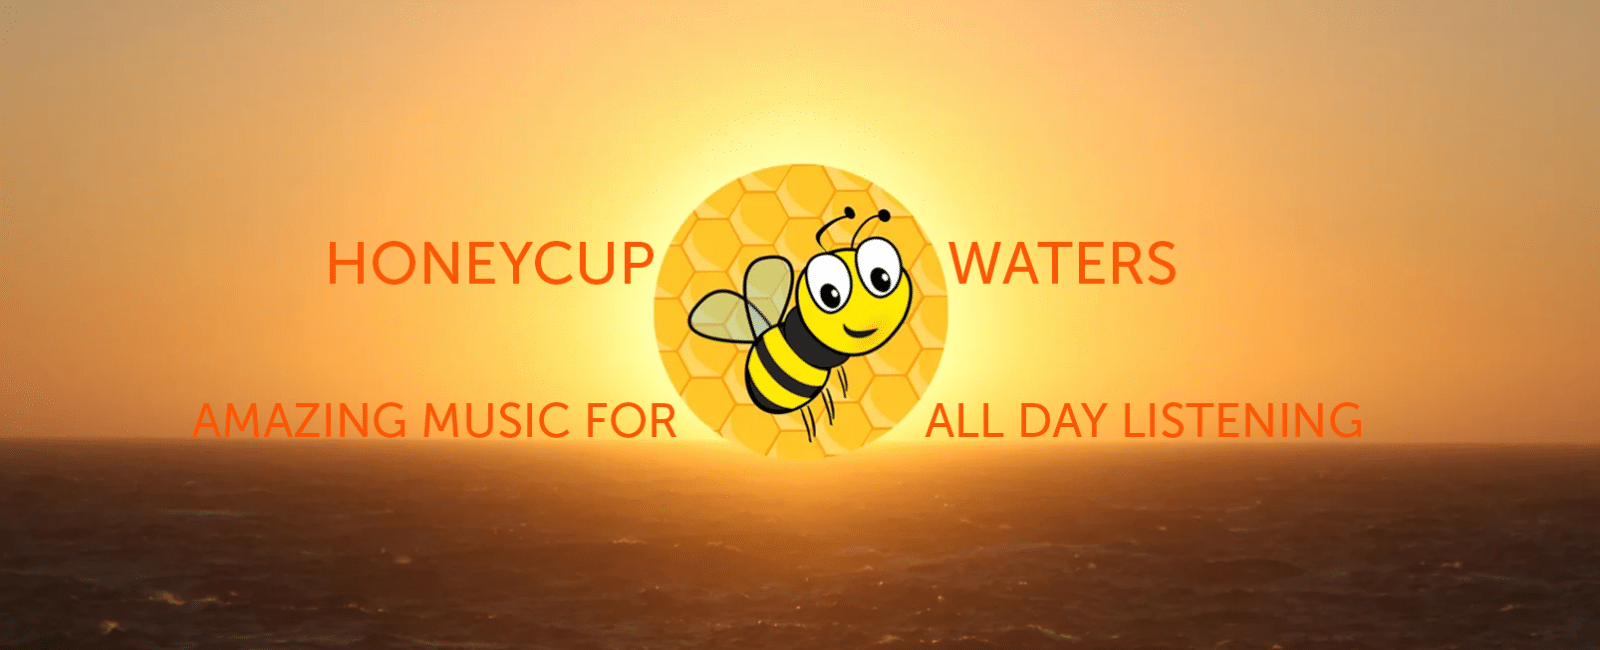 Honeycup Waters